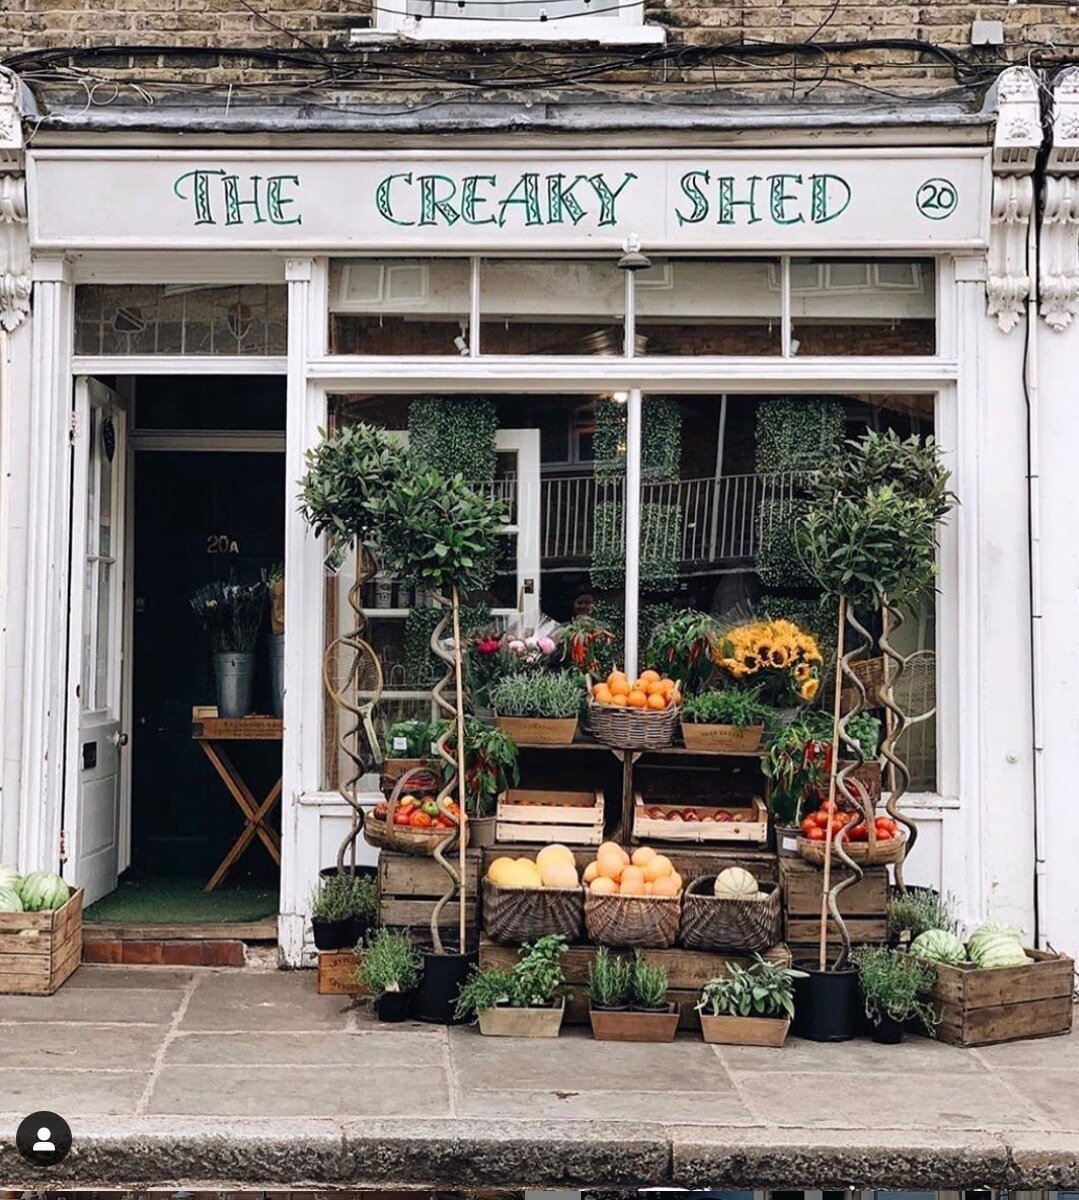 The Creaky Shed, Greenwich